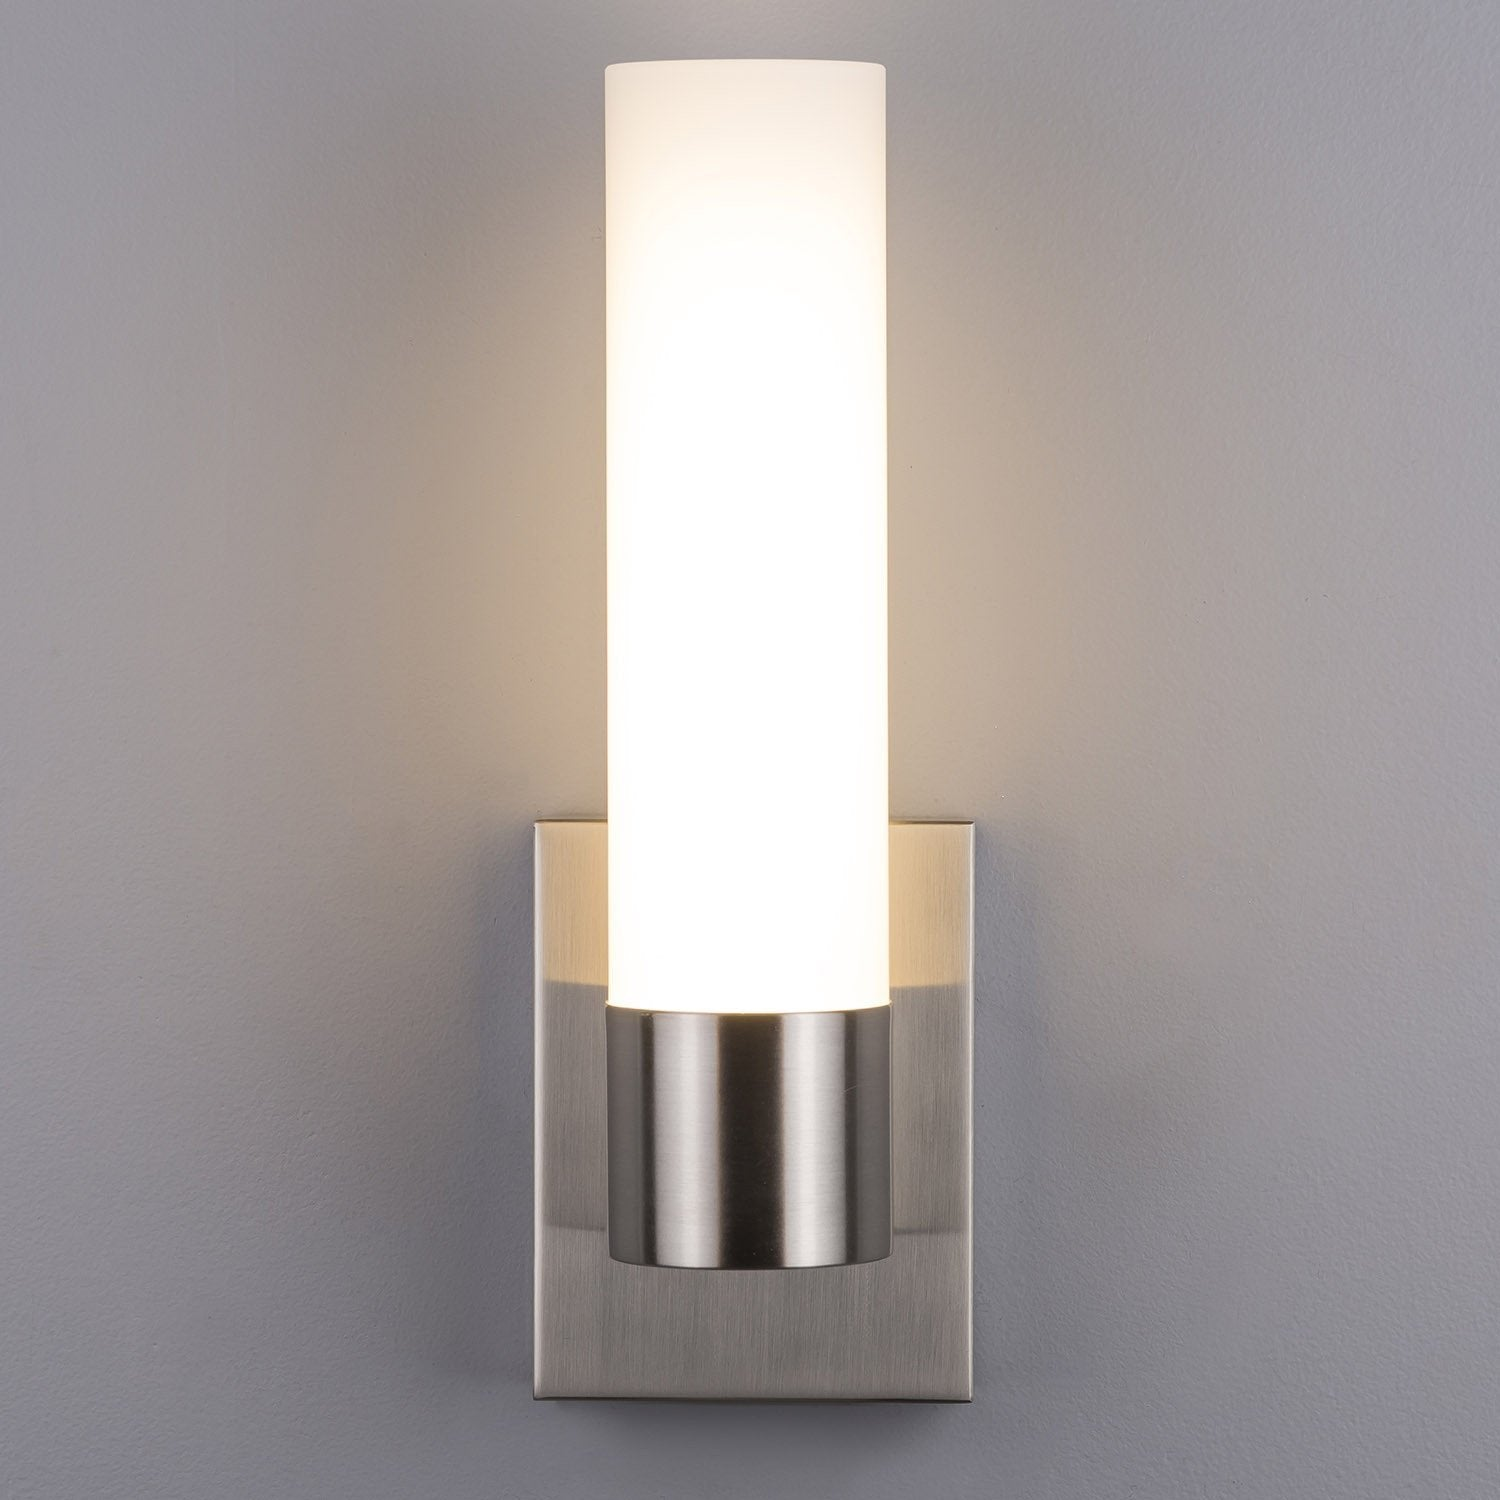 bn sobe sconce mo lighting norwell index wall by vanity